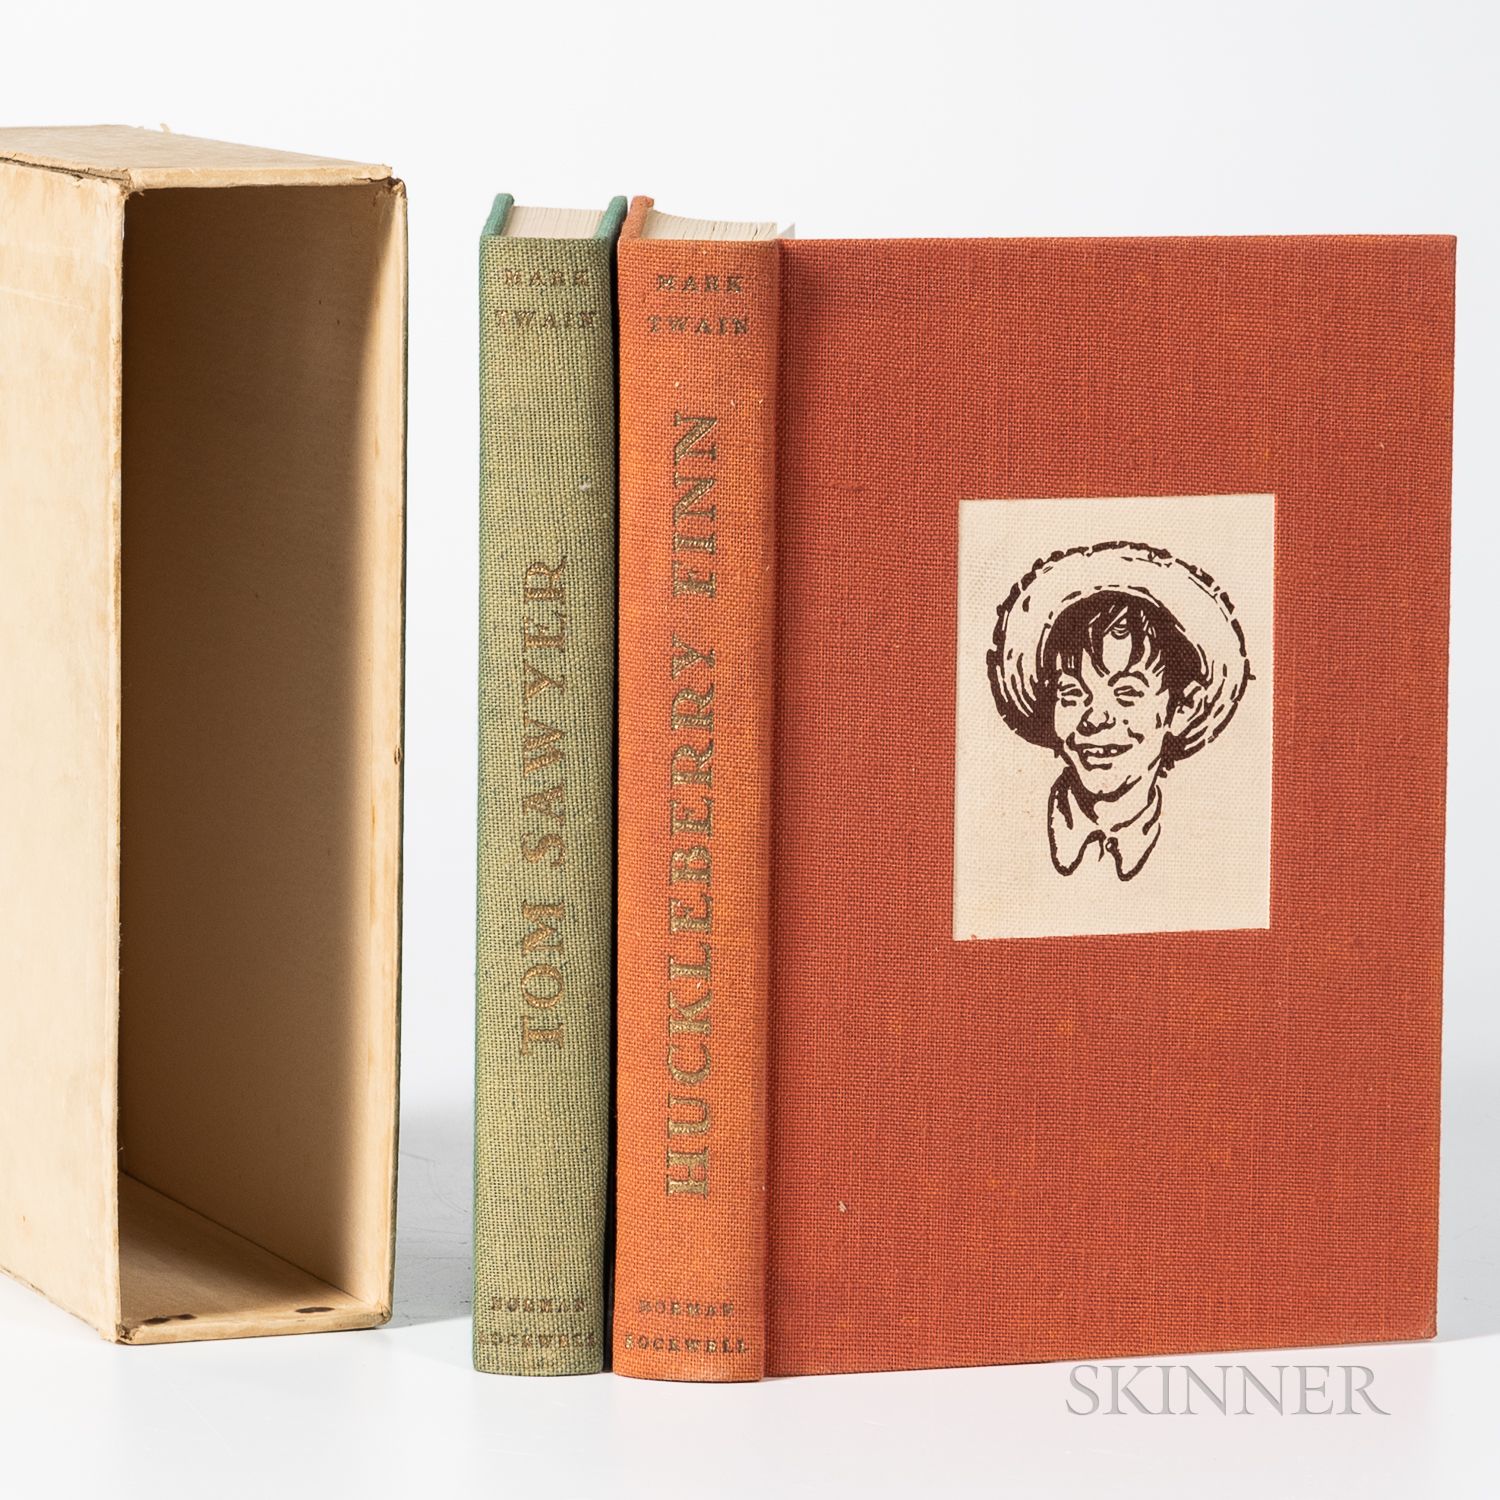 Twain, Mark (1835-1910) and Norman Rockwell (1894-1978) Illustrator Tom Sawyer   and The Adventures of Huckleberry Finn